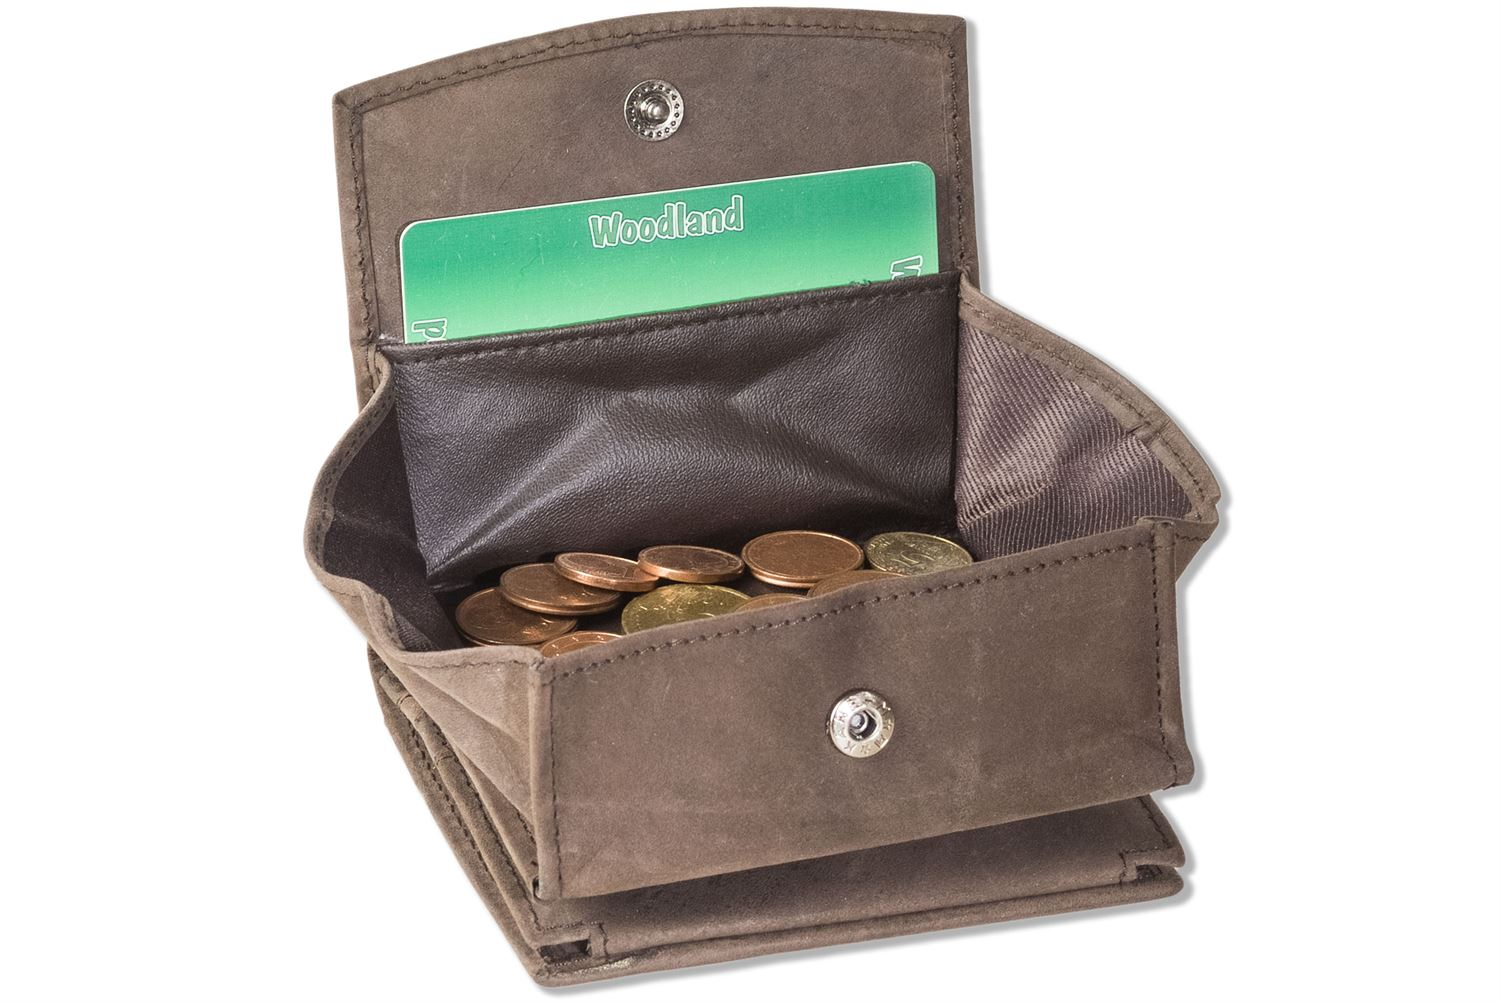 da292b6d1e4f2 Woodland® Small purse with large coin case made of natural